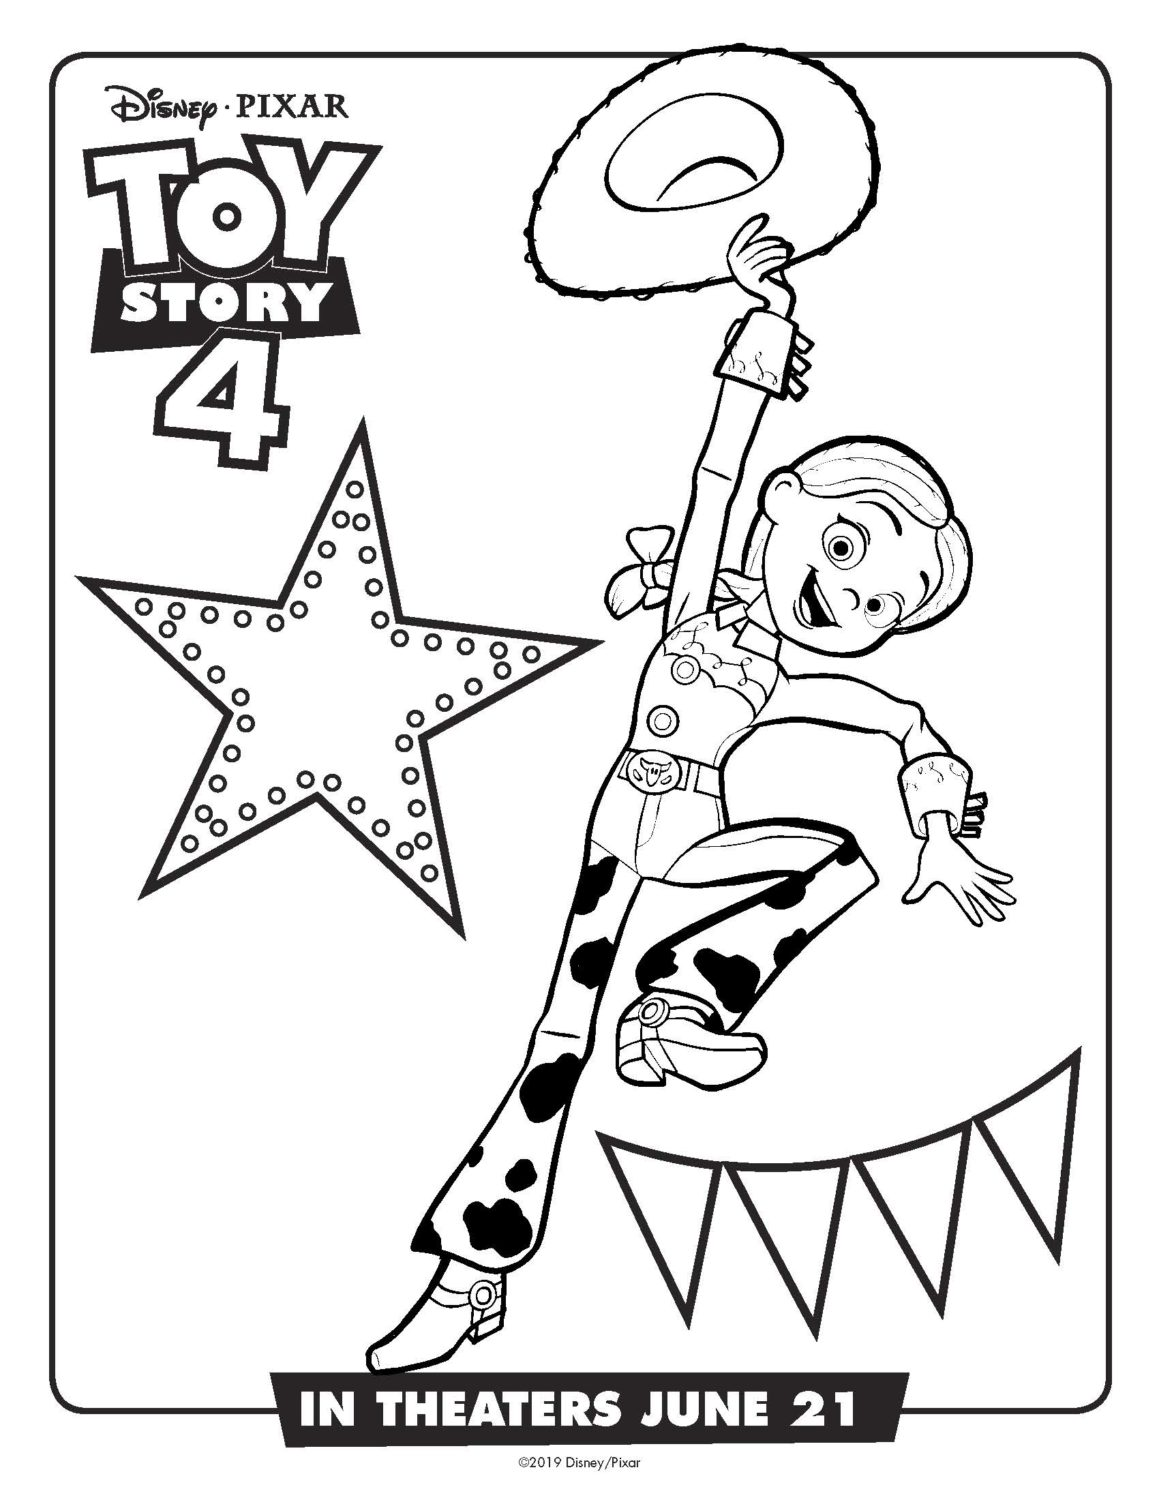 Toy Story 4 Jessie Coloring Page and Activity Sheet